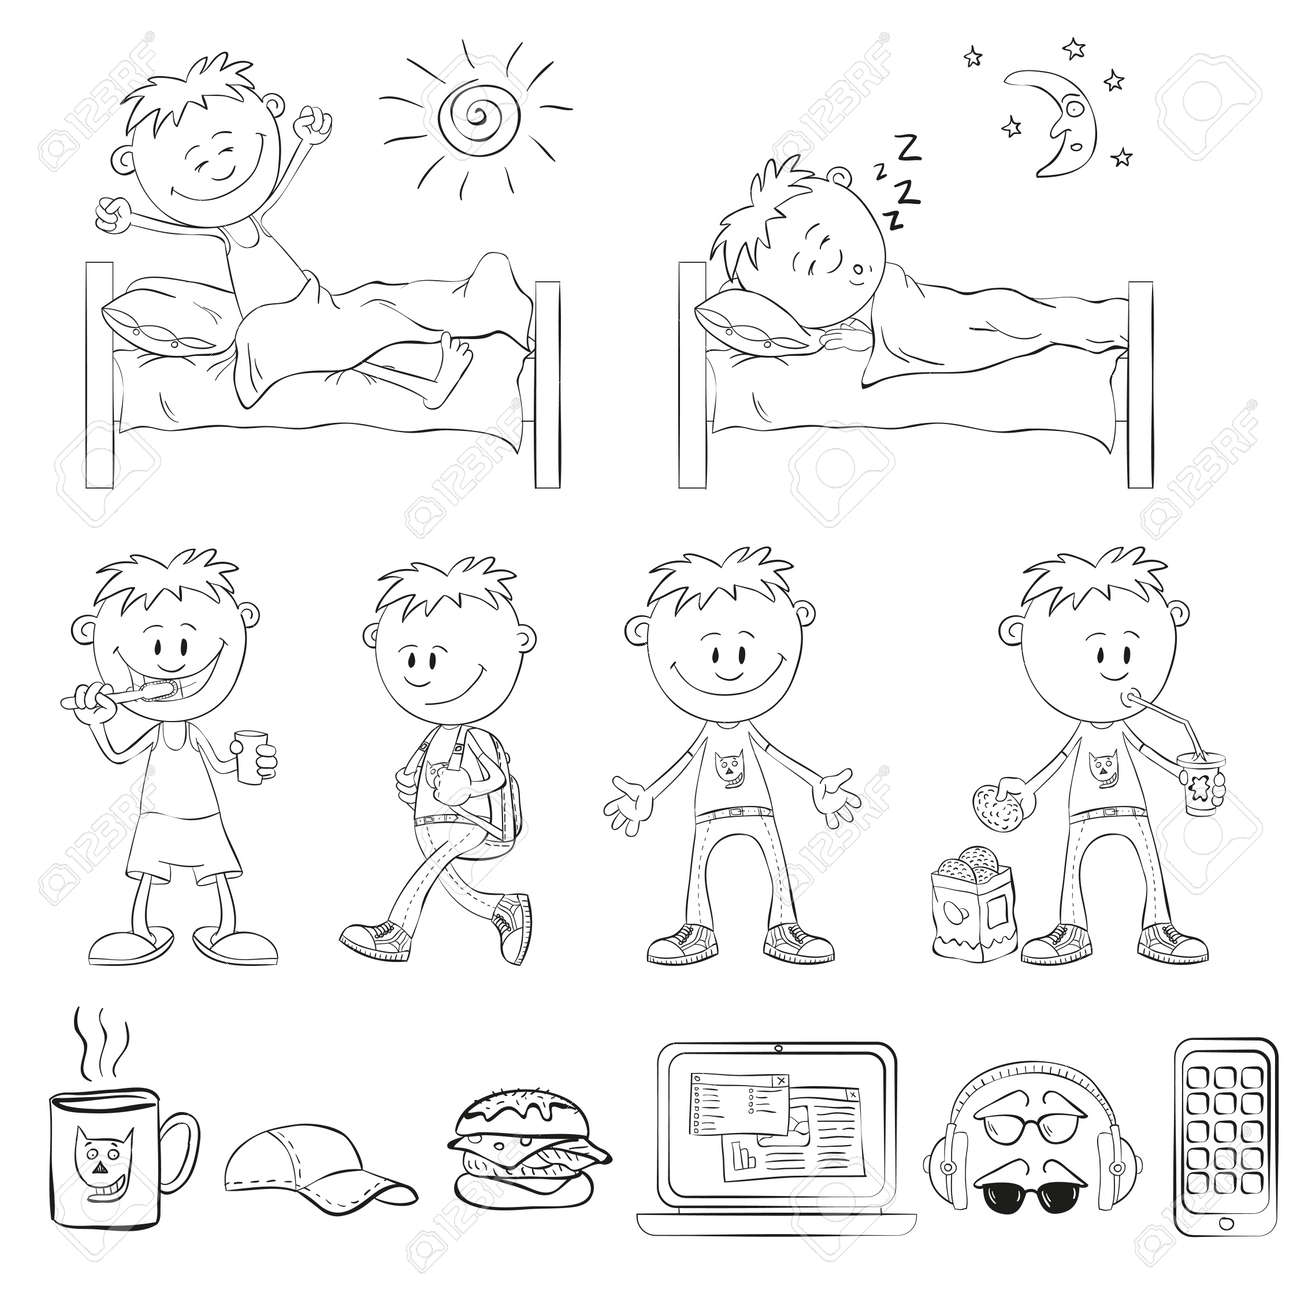 Boy draw the outline of a sketch style the boy wakes up sleeping in the bed boy brushing his teeth comes with a backpack drinking a cocktail with